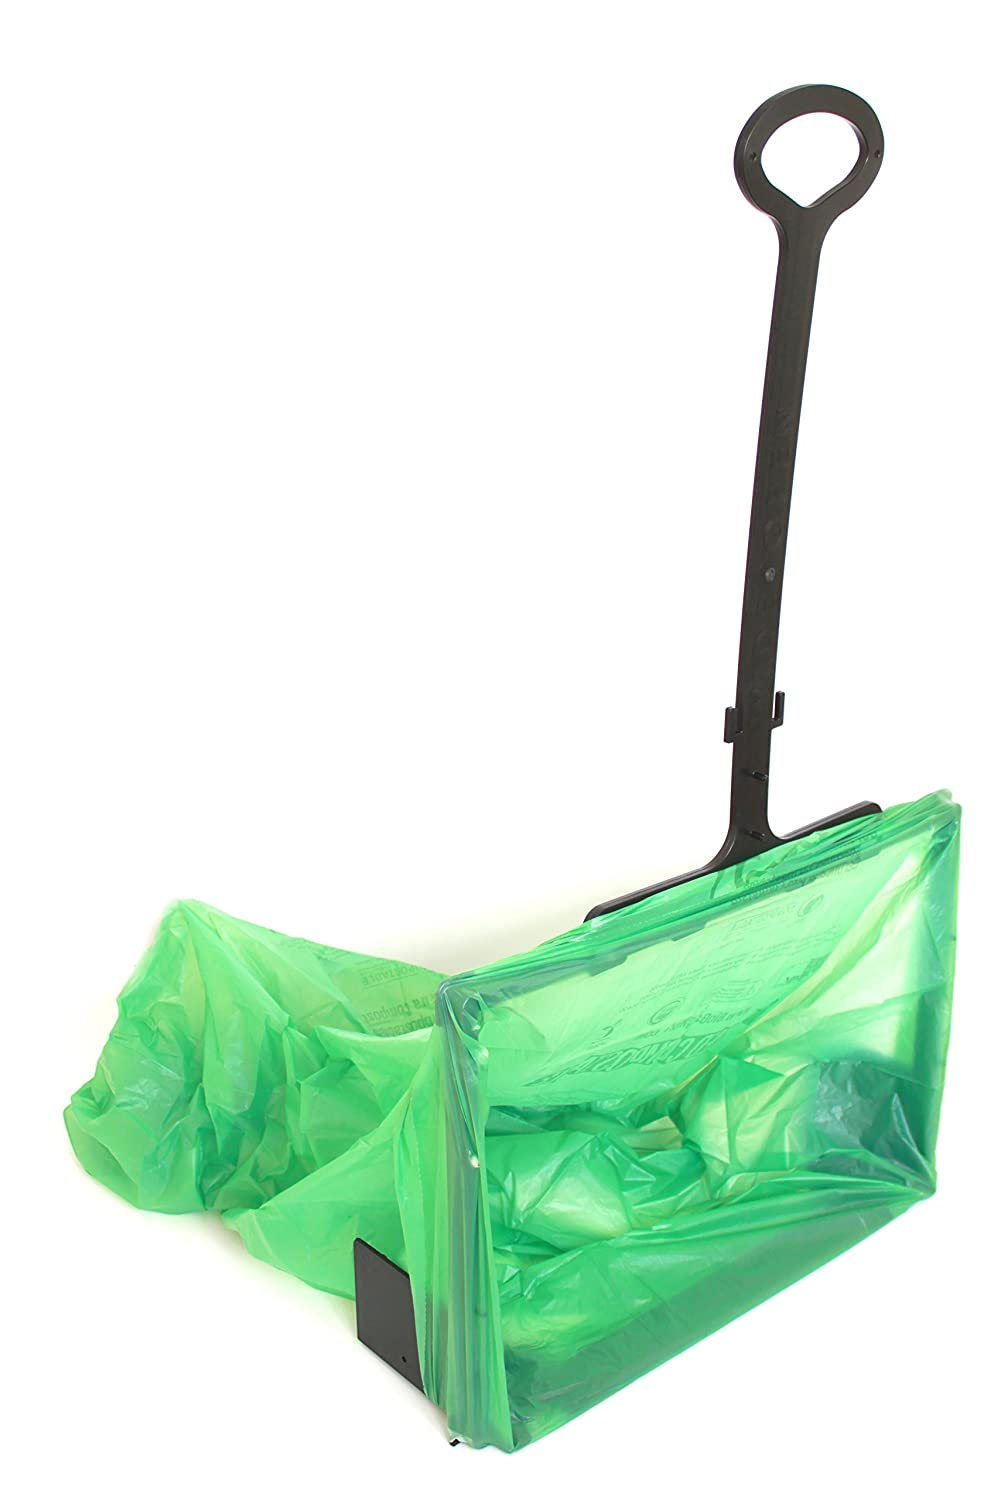 WideOpen's Big-Bagger let's you Rake, Sweep, Shovel, and more into an Open Plastic Trash Bag for Easy Cleanup H&PC-84142